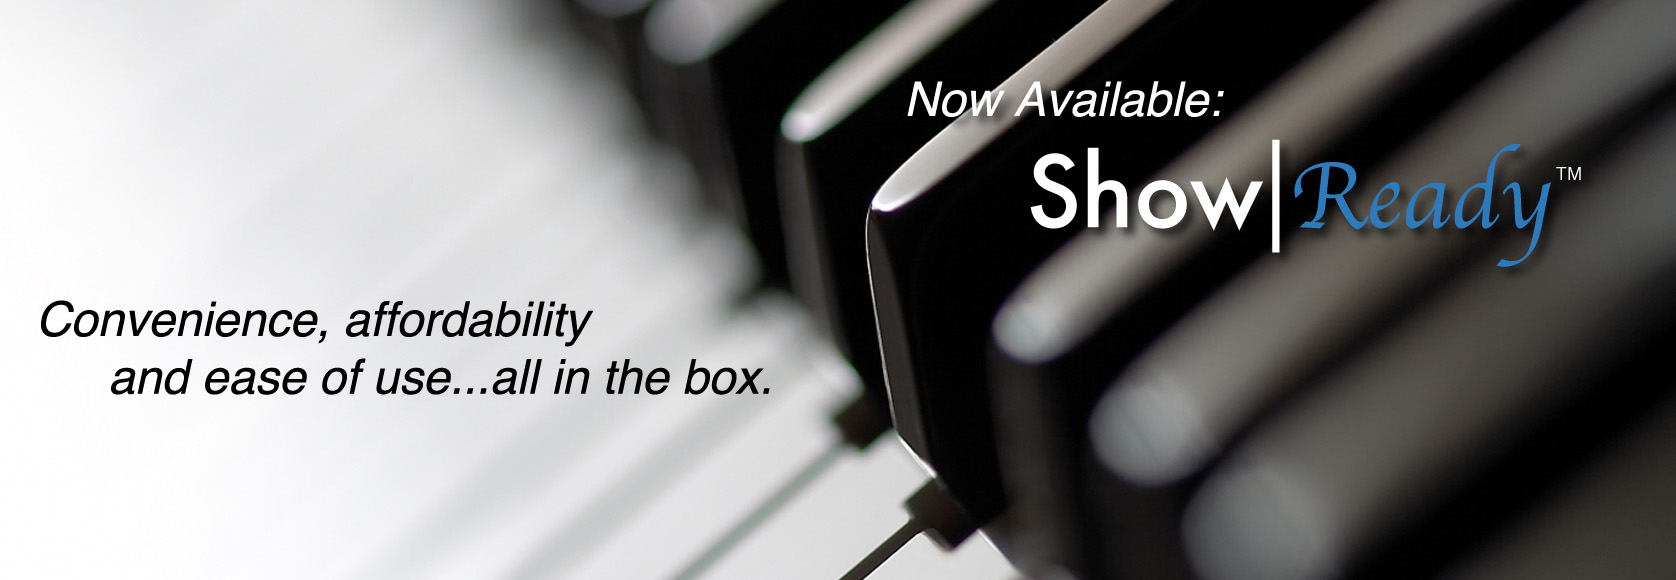 Now Available: Show|Ready - Convenience, affordability, and ease of use...all in the box.